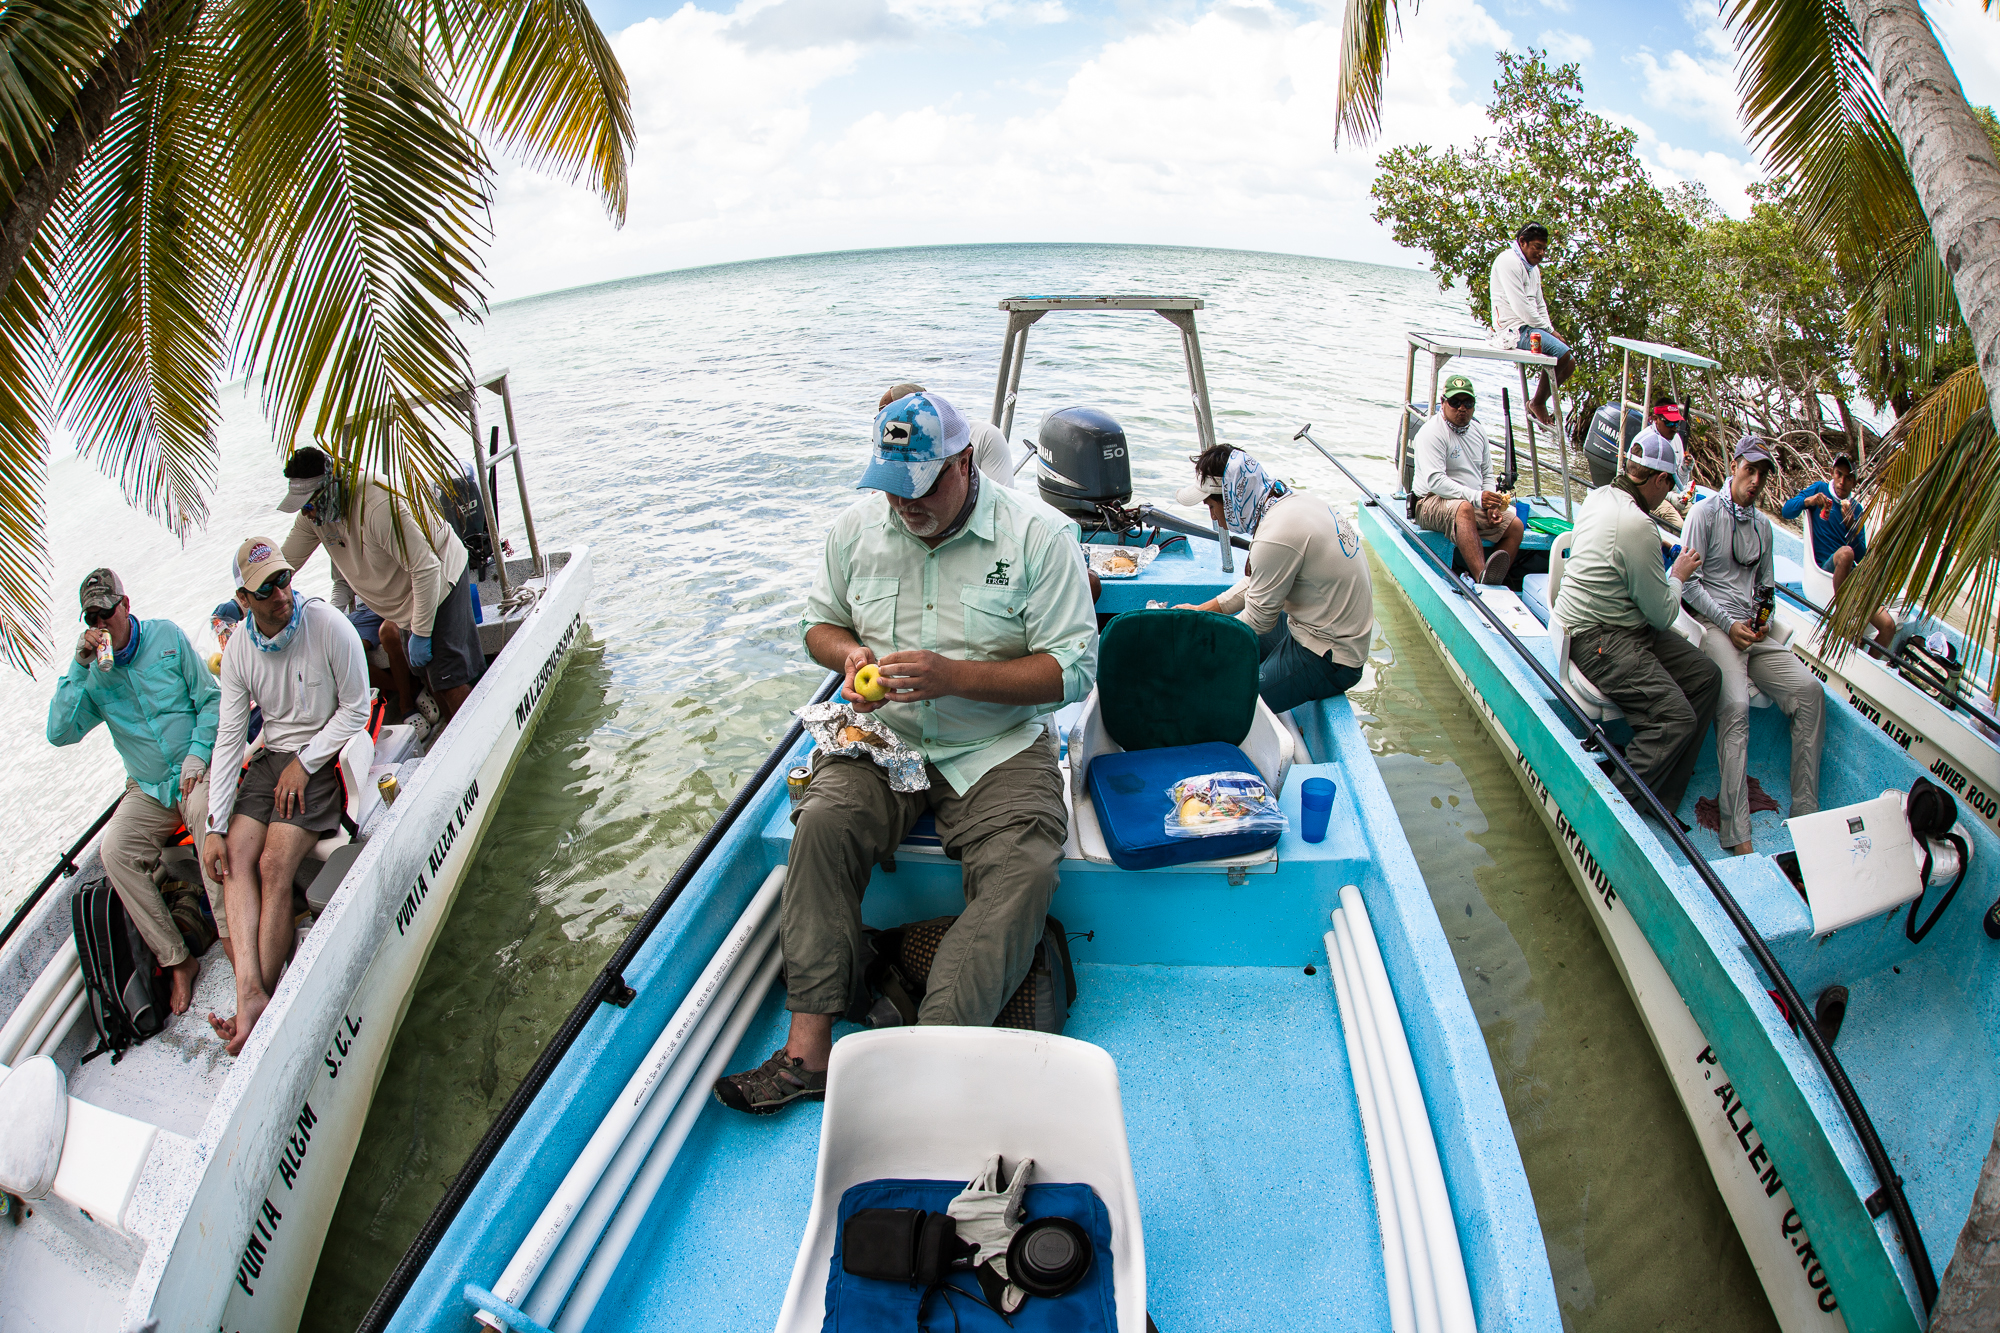 (2/4) An idyllic island serves as a meeting point for a midday lunch where tales of the morning's happenings are shared. Resident iguanas quickly emerge from the jungle brush in search of handouts from anglers (photo: Chad Shmukler).